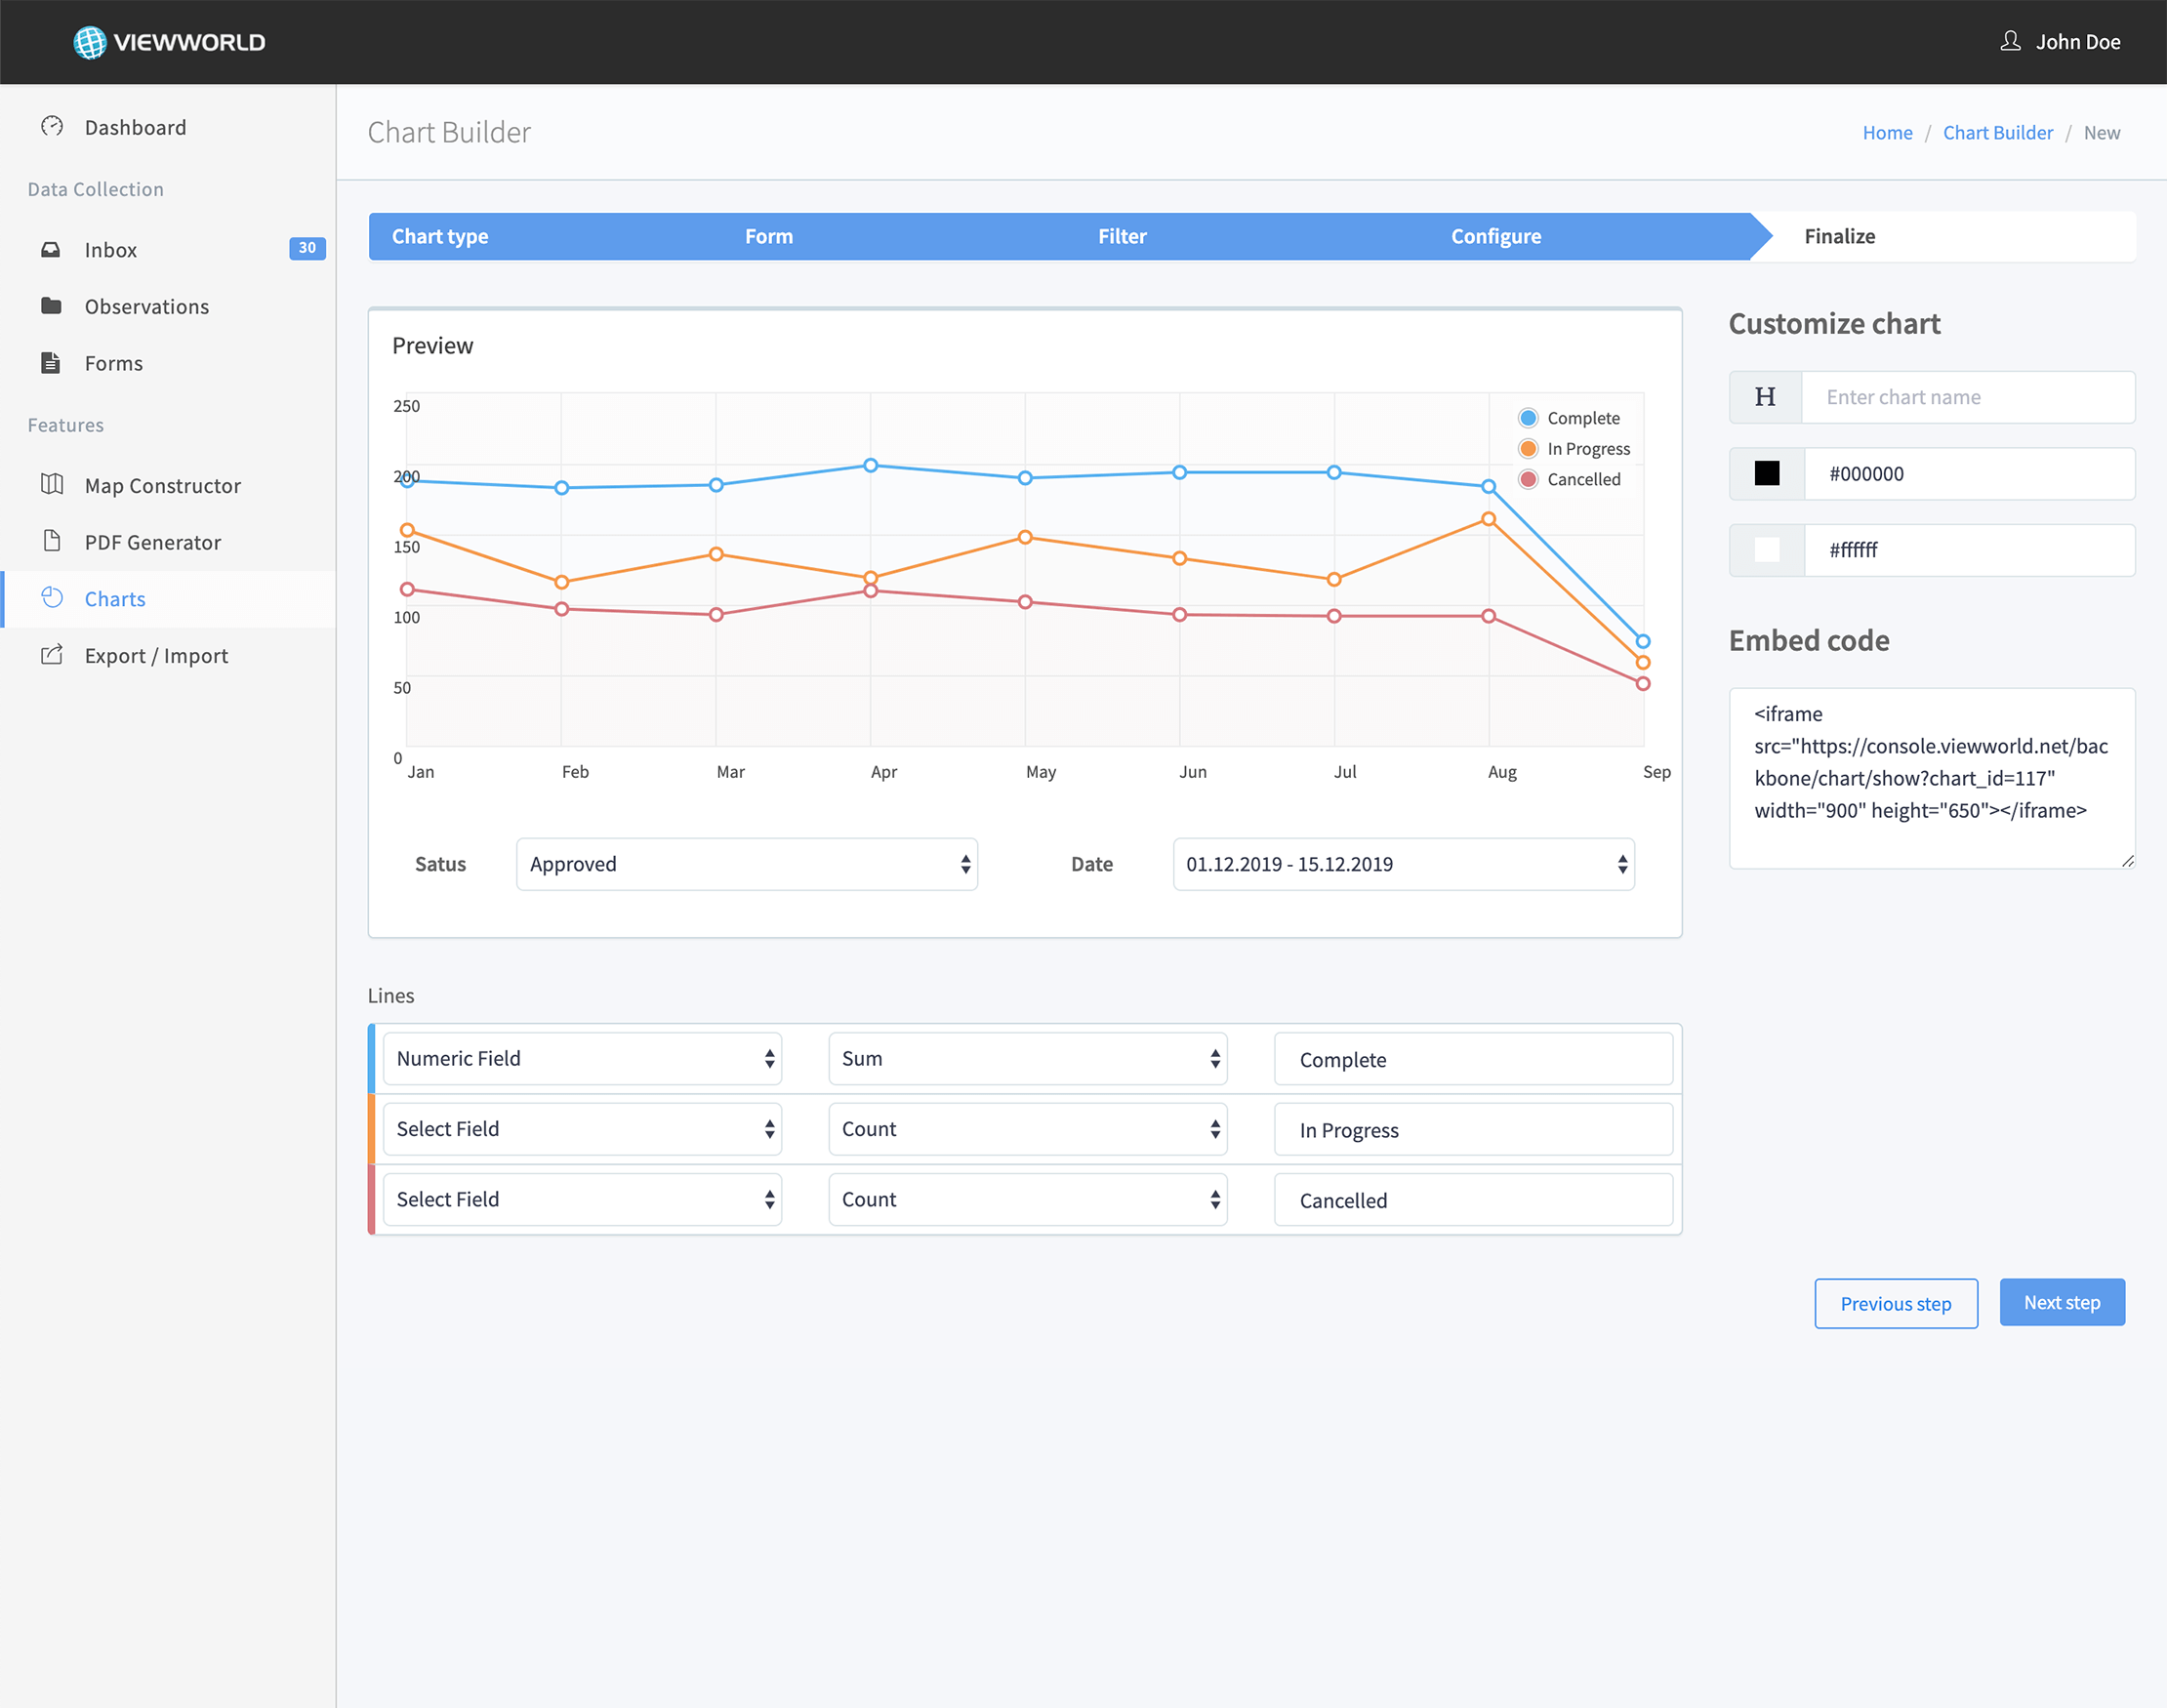 Viewworld - Chart Builder Screenshot